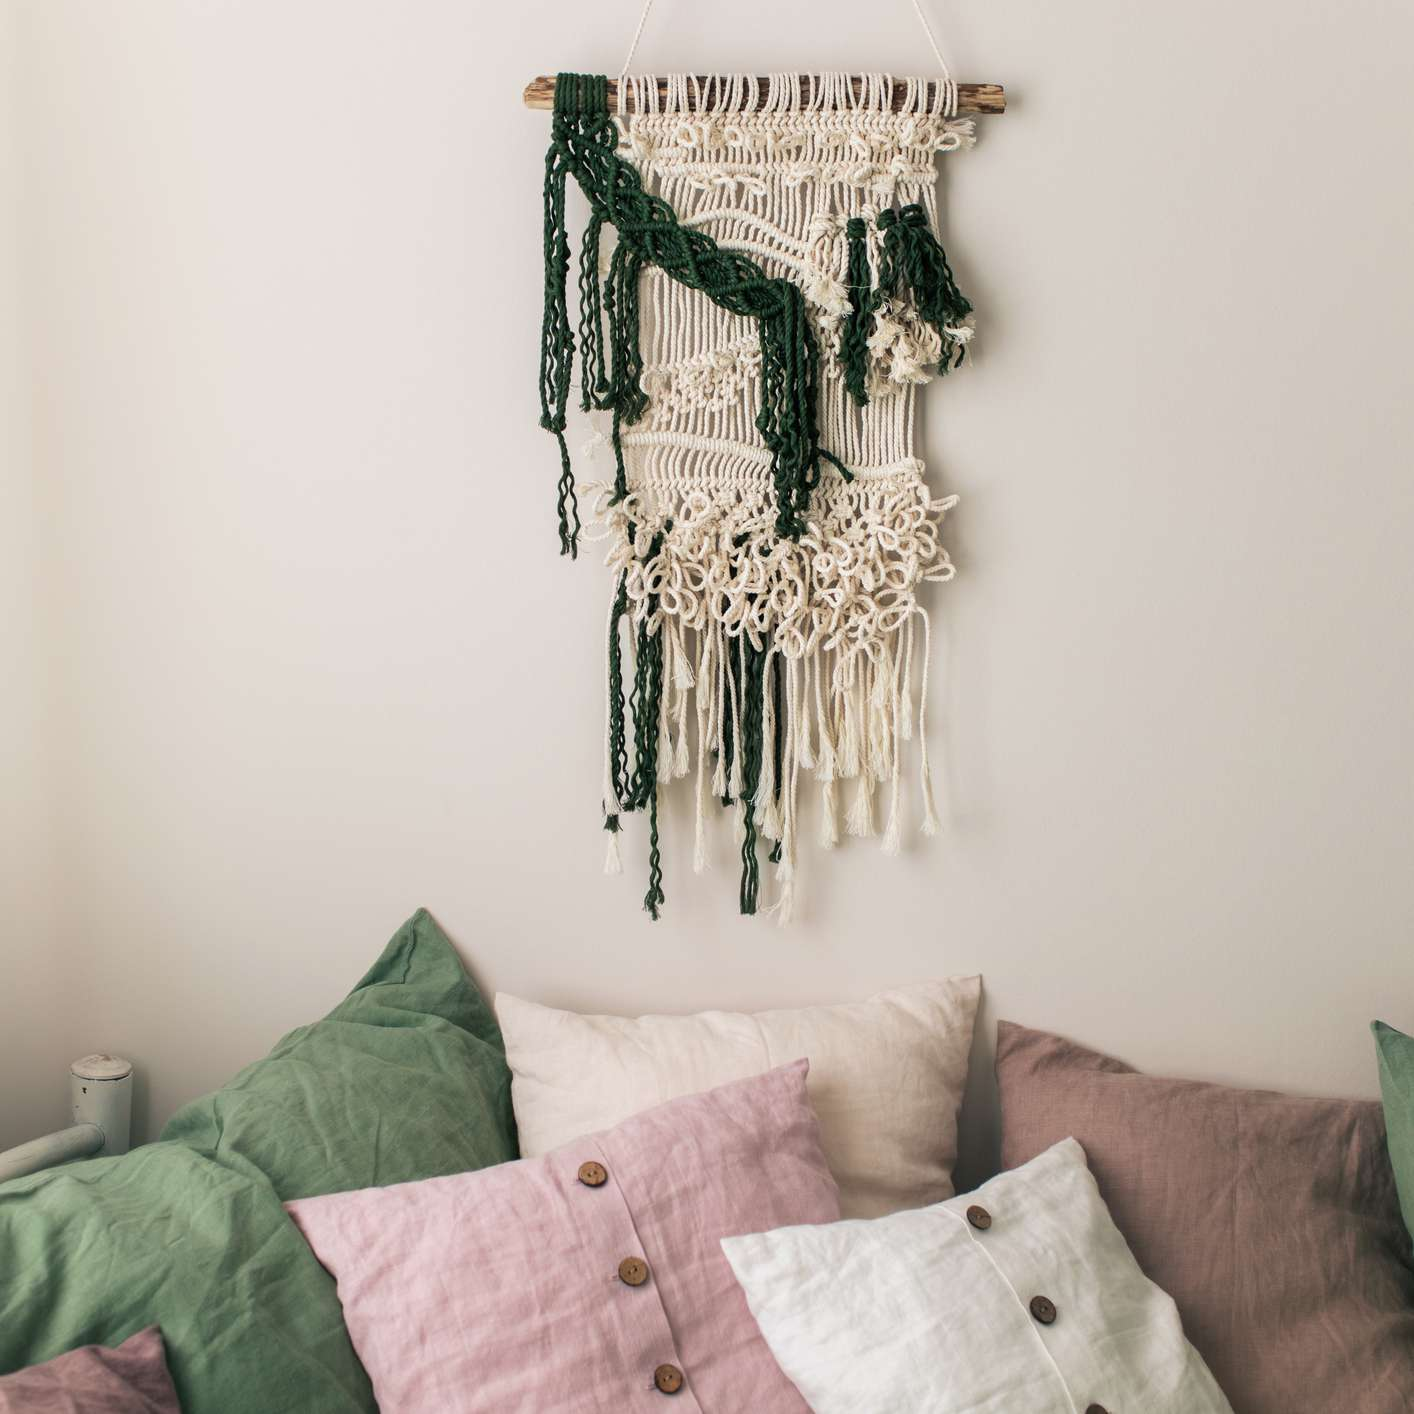 A bedroom with blush pink and macrame accents